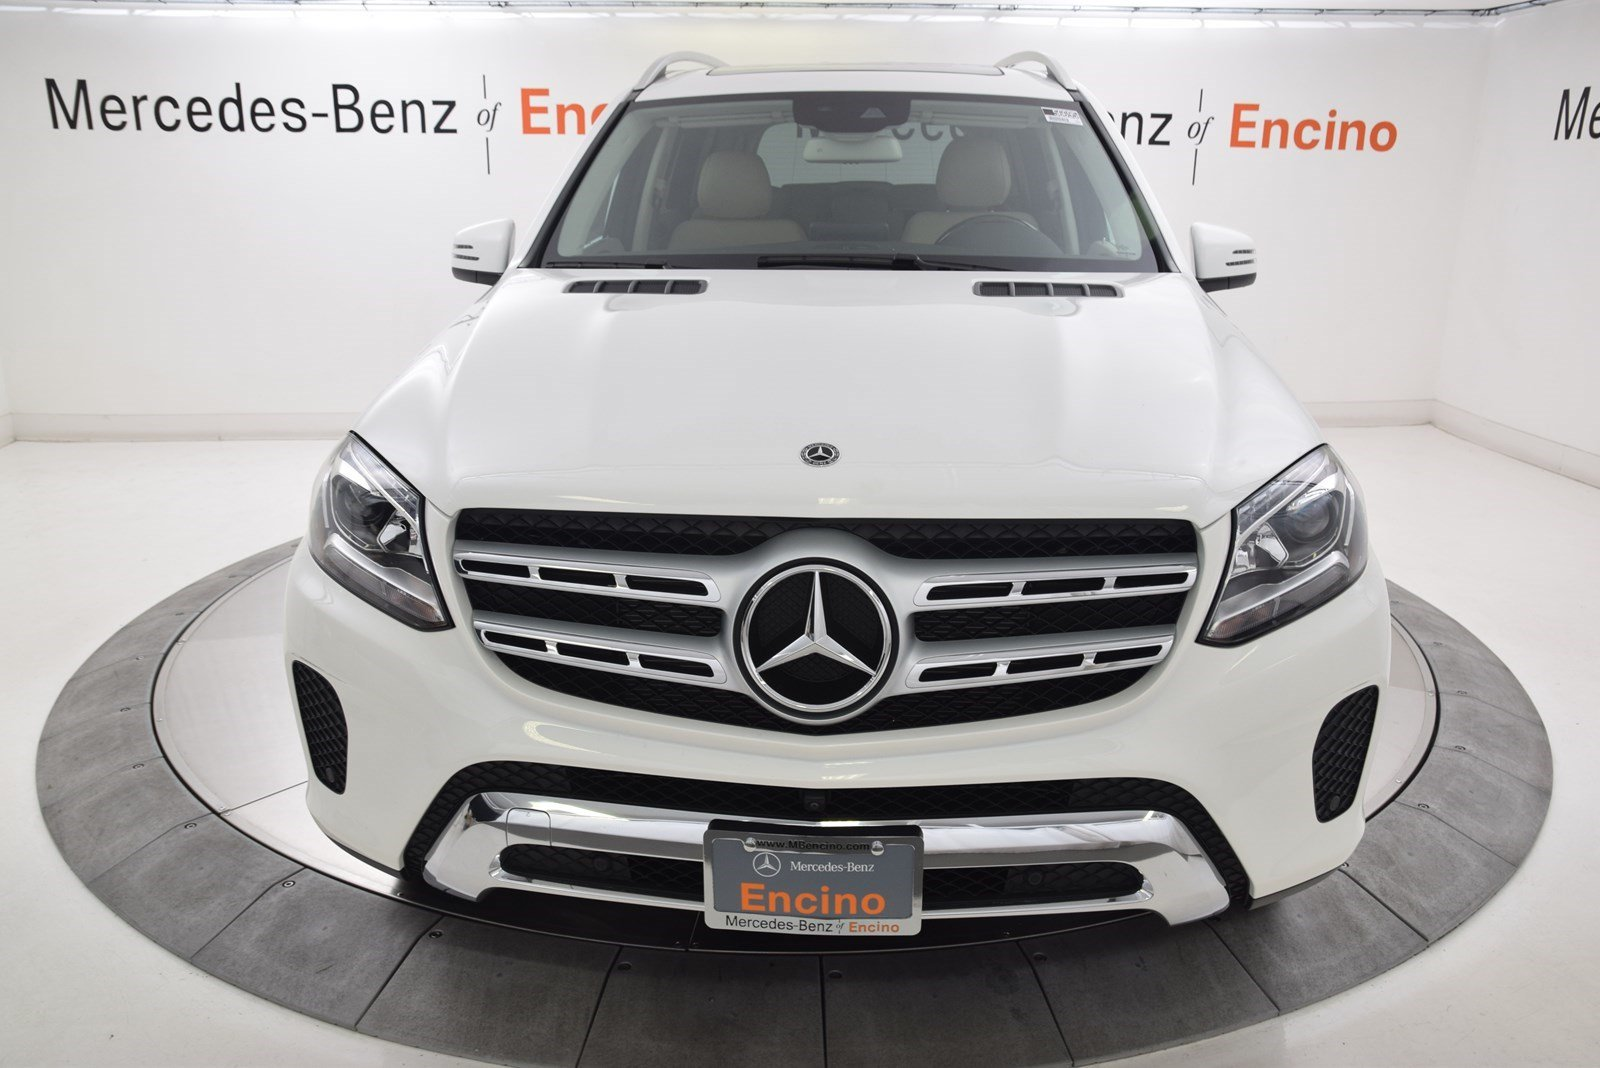 New 2017 mercedes benz gls gls 450 suv in encino 56723 for 2017 mercedes benz gls 450